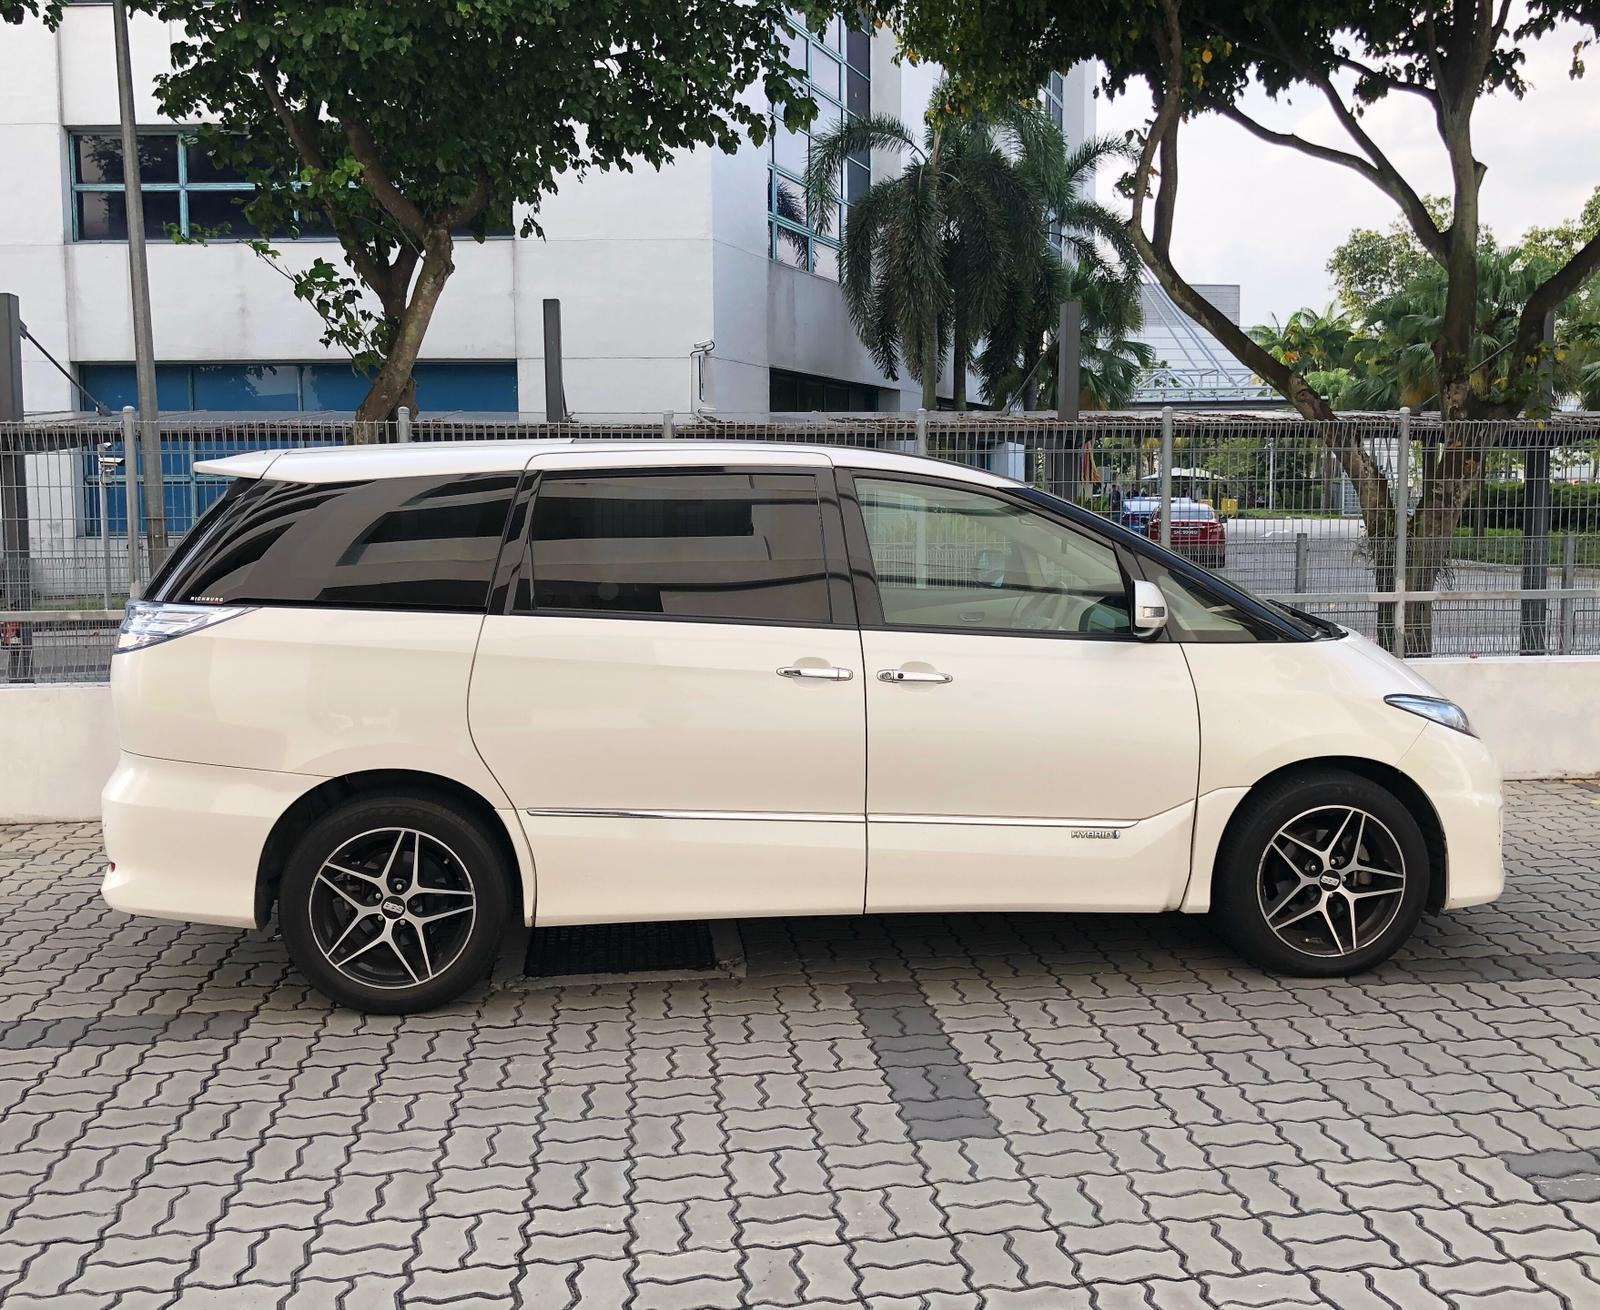 TOYOTA ESTIMA HYBRID *before gojek rebate**7 seater mpv*Toyota Wish Car Axio Honda Stream Cars PHV  For Rent Grab Rental Gojek Or Personal Use Low price and Cheap